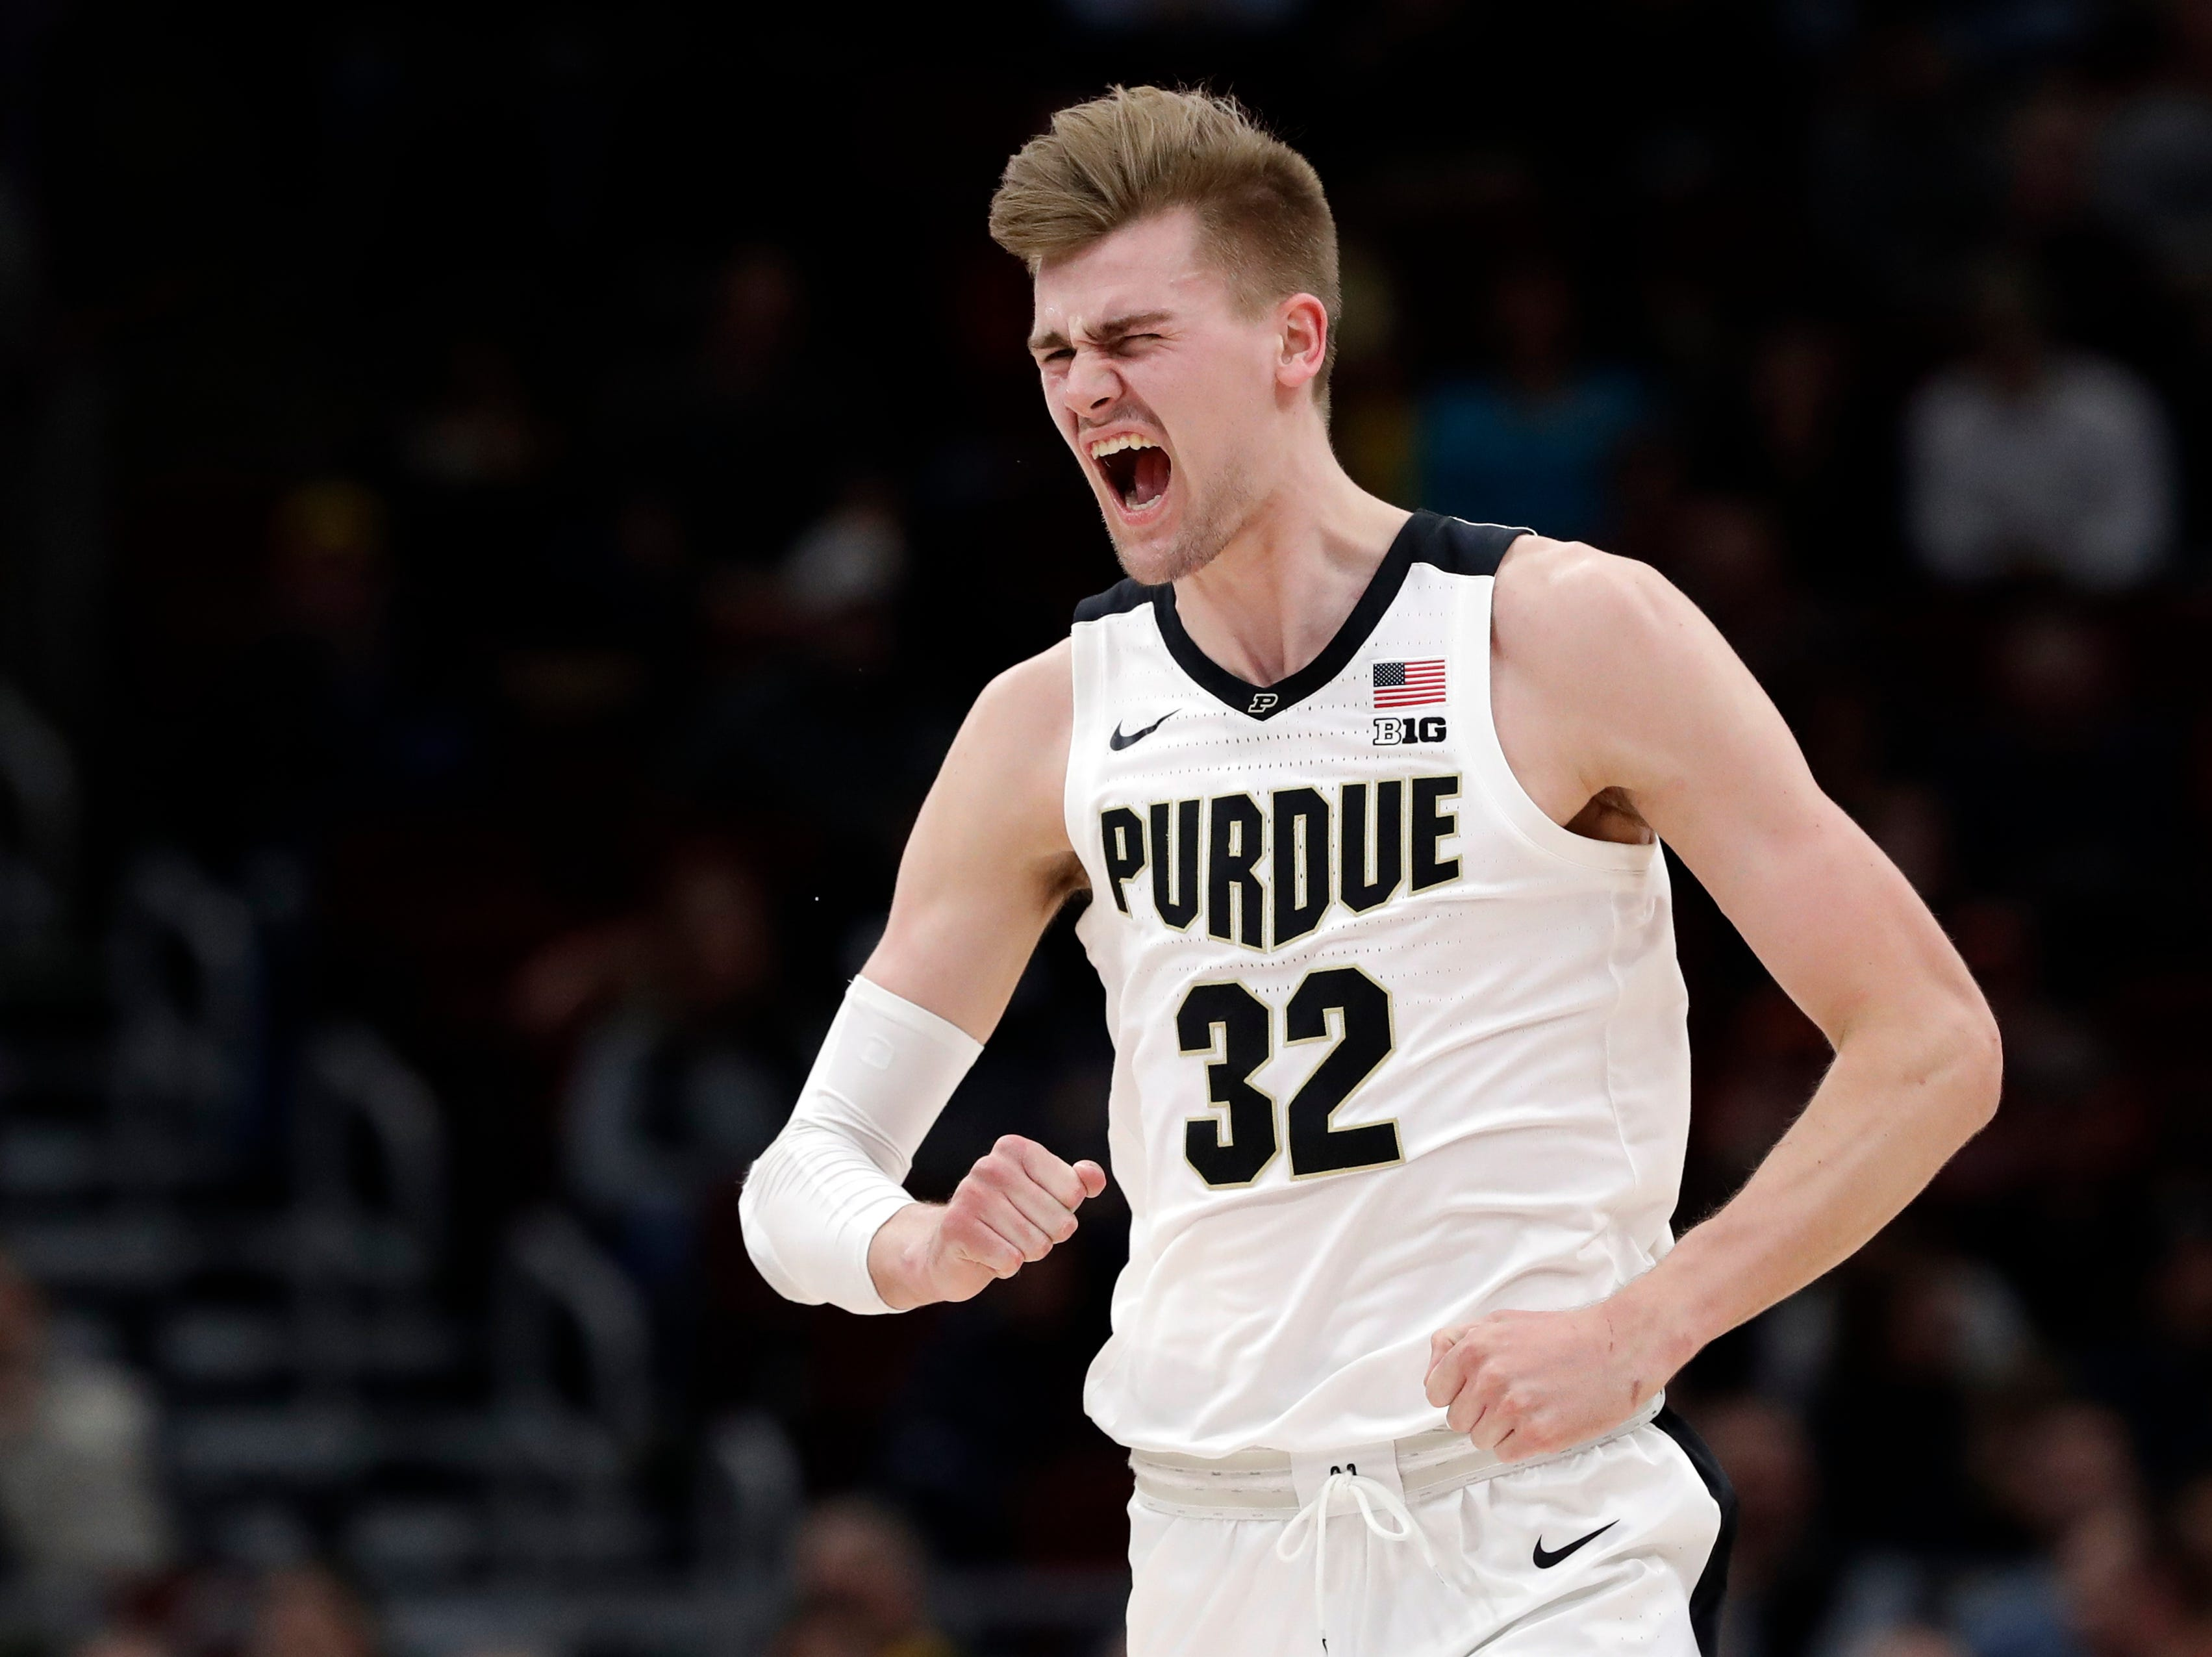 Purdue's Matt Haarms reacts after scoring a basket during the first half of the team's NCAA college basketball game against Minnesota in the quarterfinals of the Big Ten men's tournament Friday, March 15, 2019, in Chicago. (AP Photo/Nam Y. Huh)